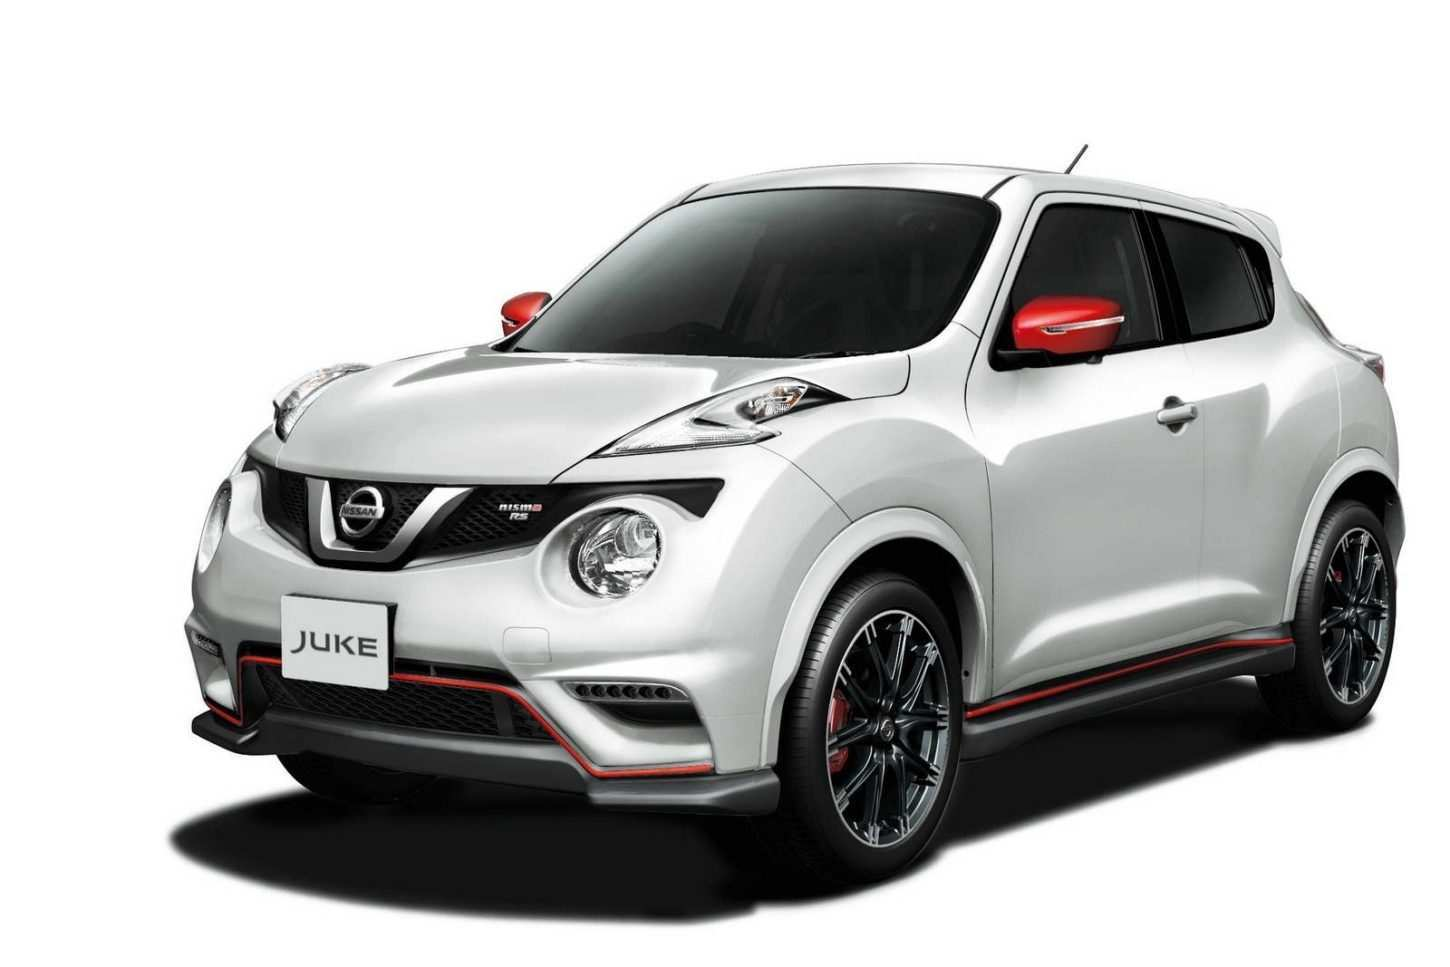 61 Concept of The Nissan Juke 2019 Review New Release Specs for The Nissan Juke 2019 Review New Release